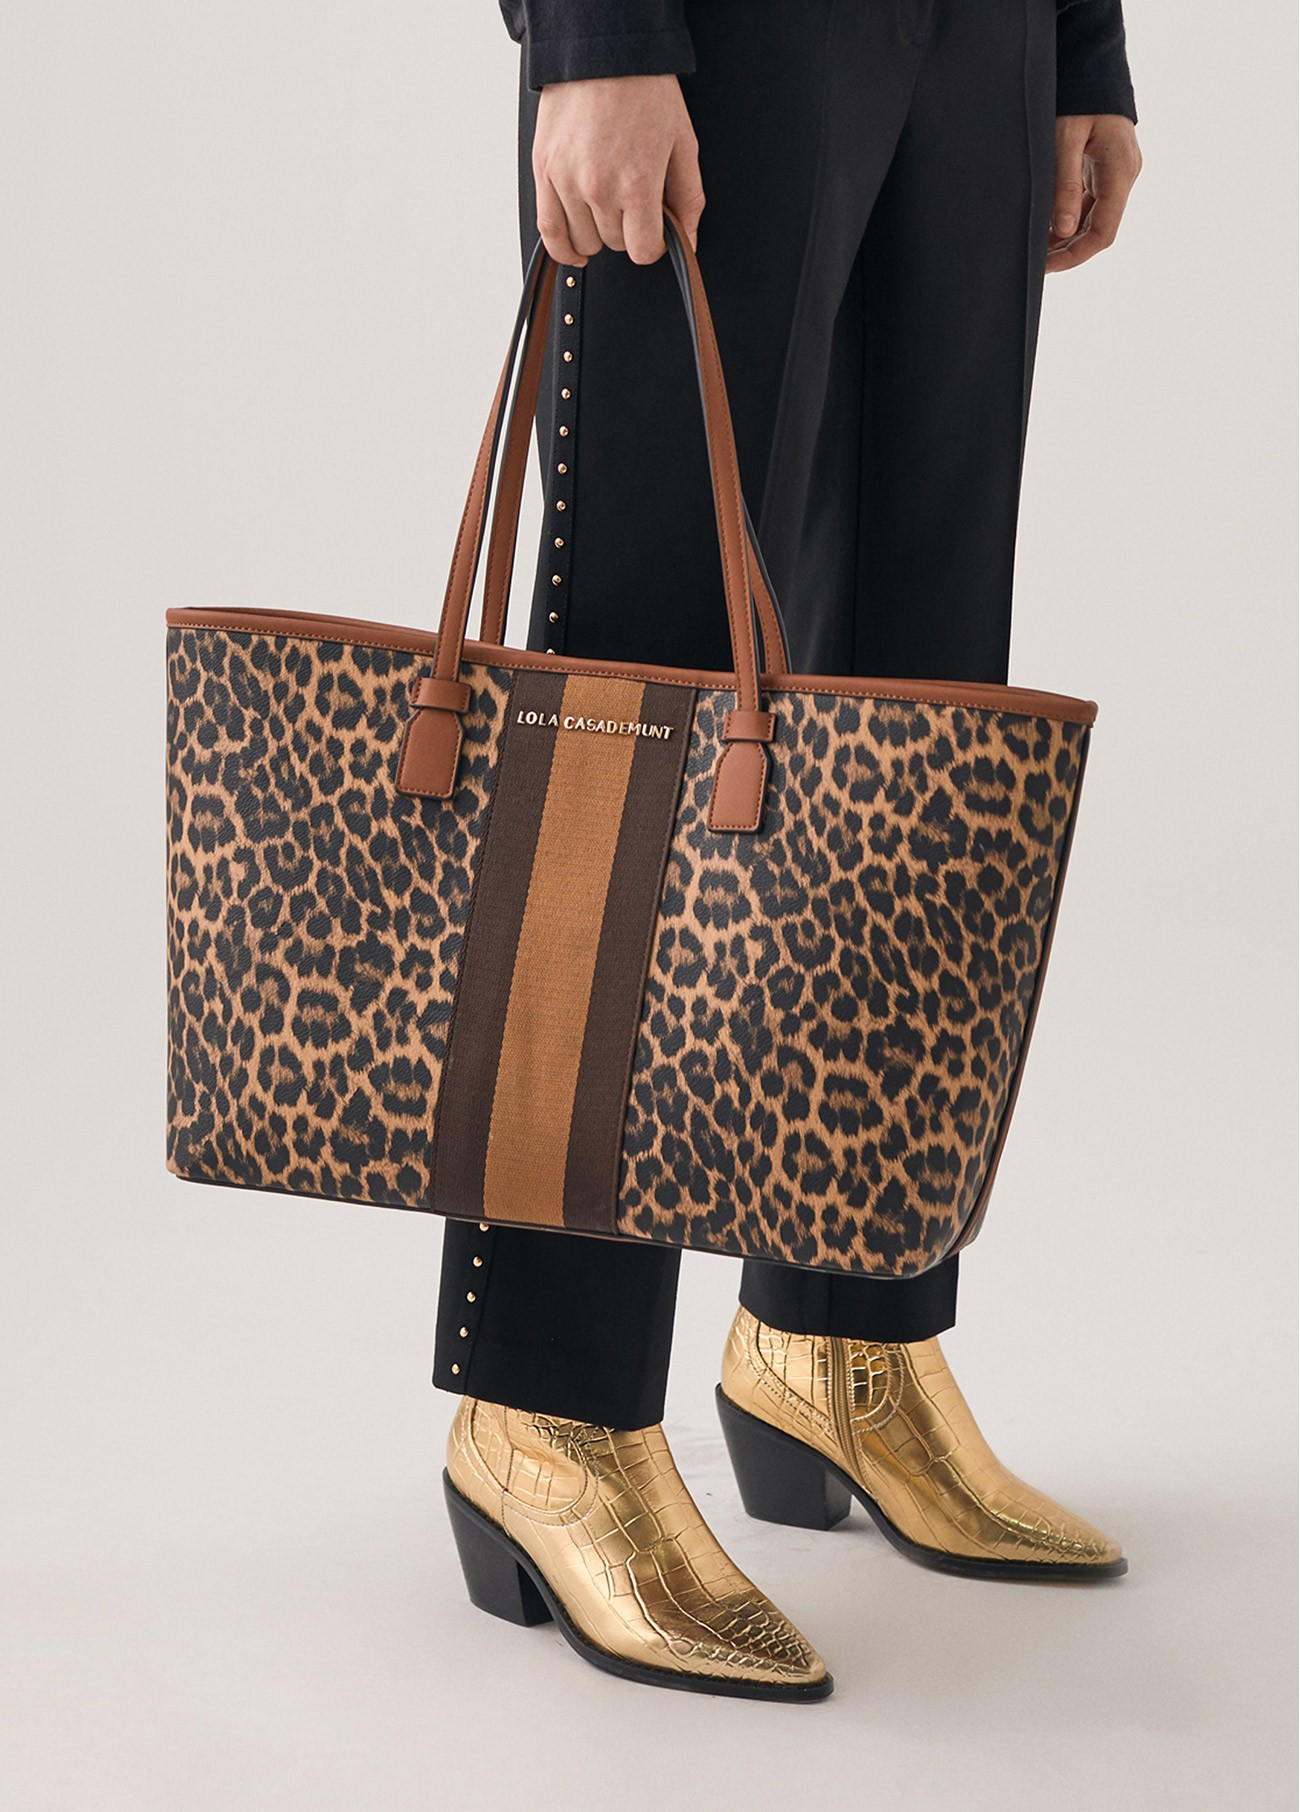 Bolso shopper leopardo, estampado